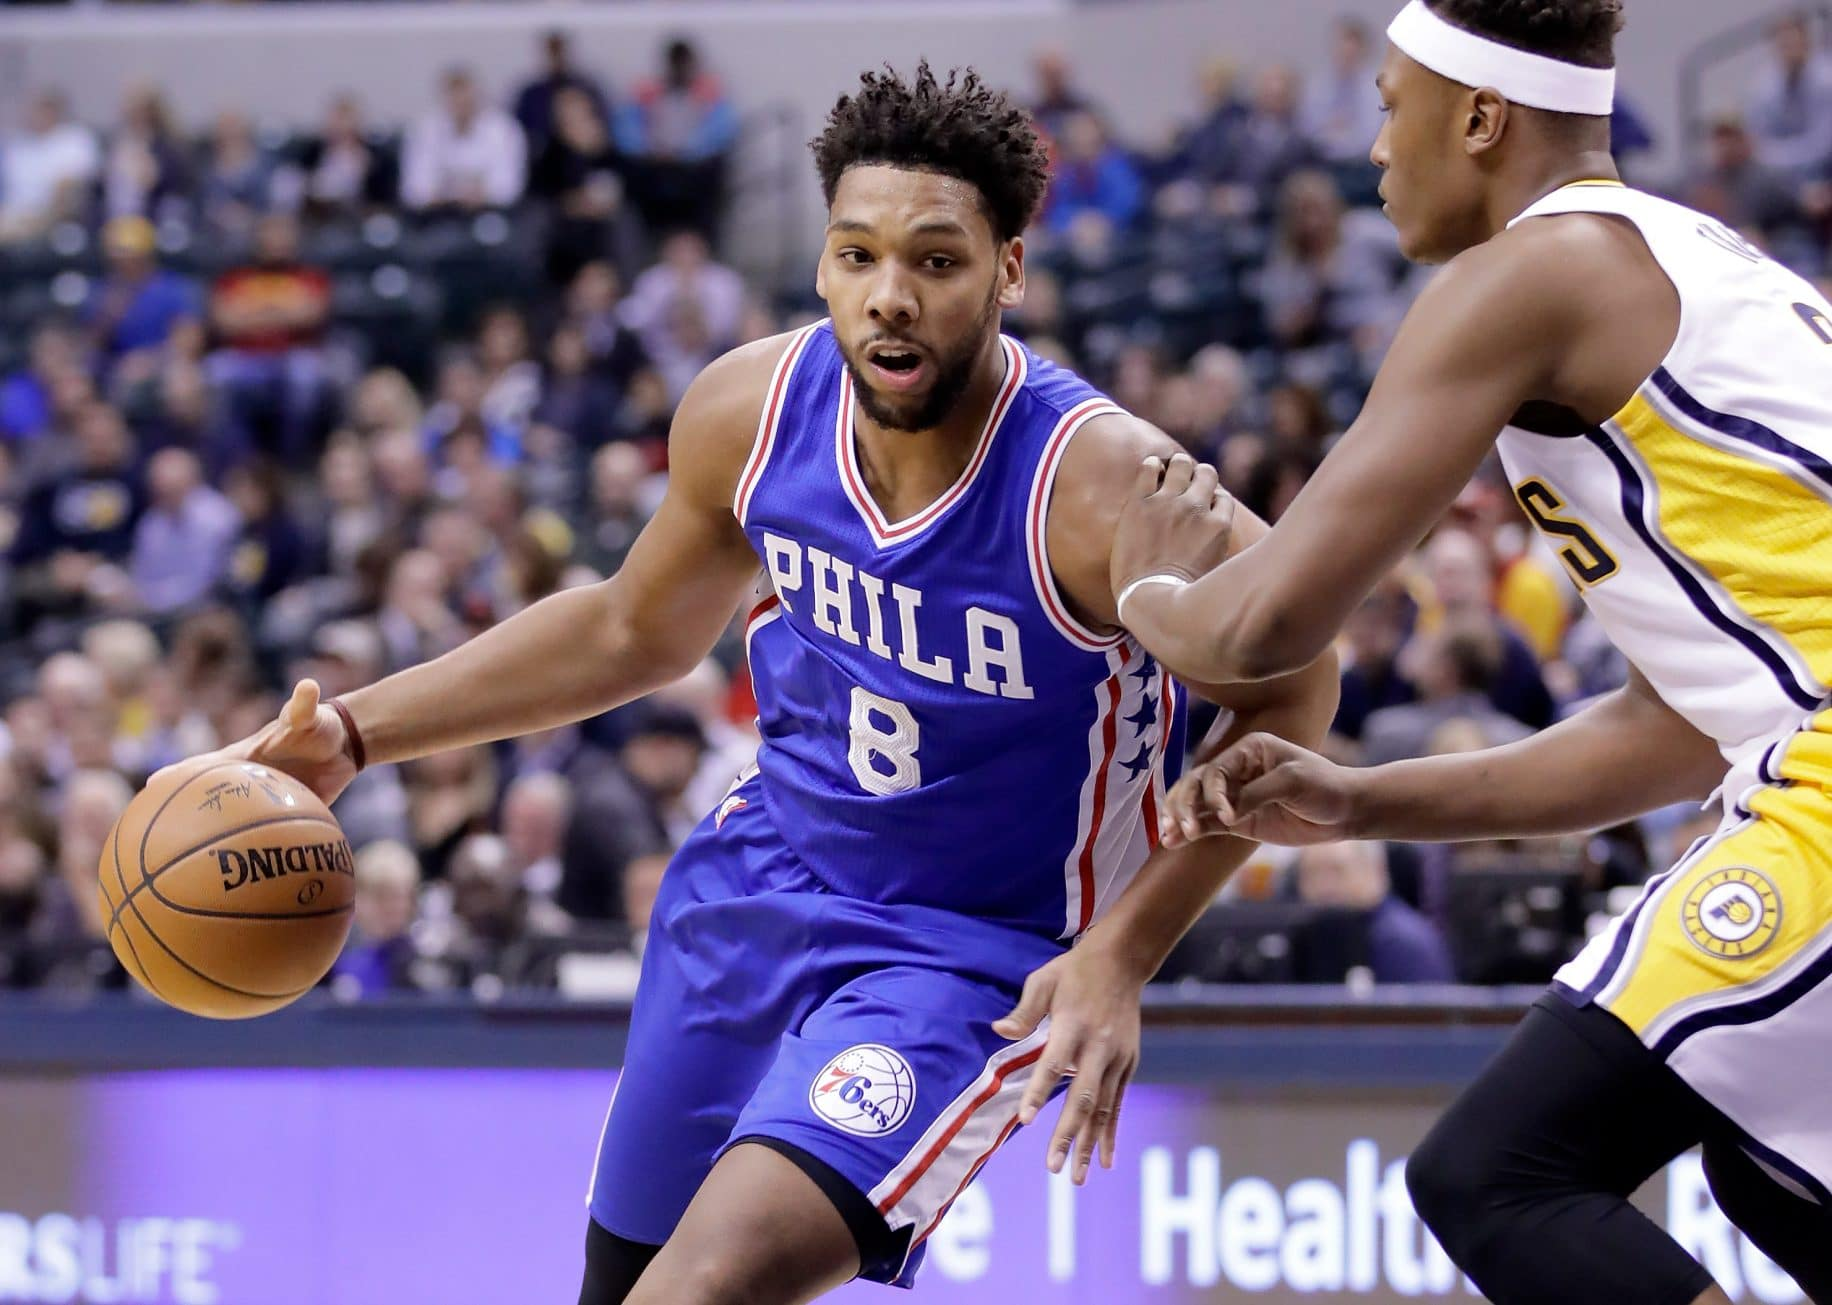 Jahlil Okafor on the rebound, starting fresh with the Brooklyn Nets